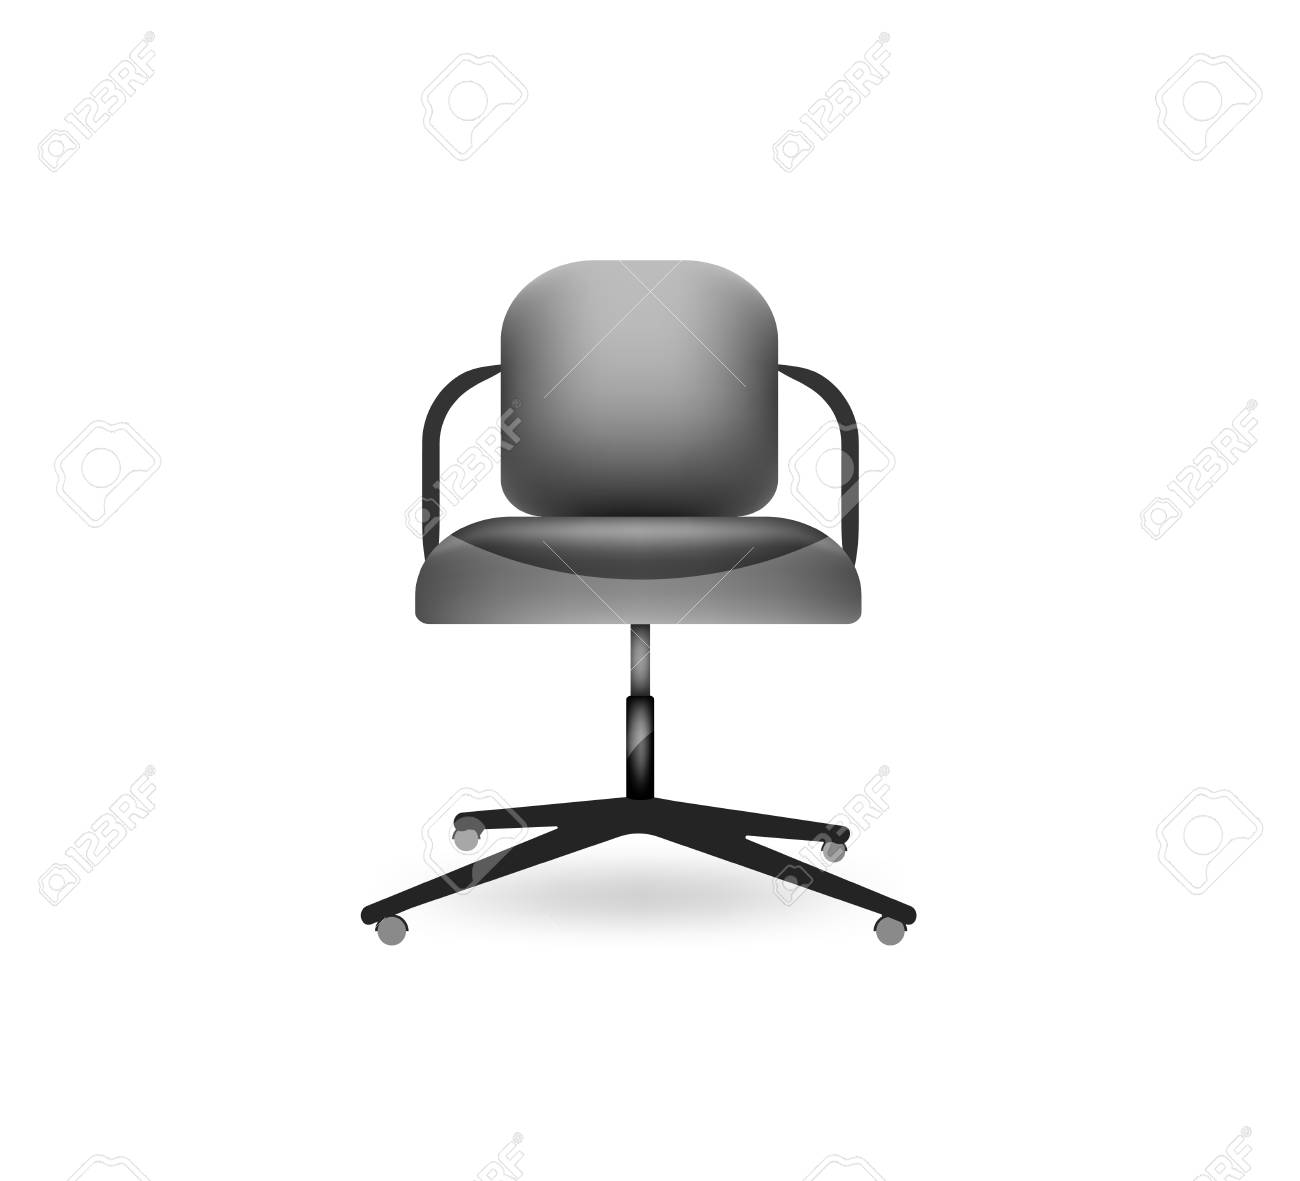 office chair vector clear plastic covers design royalty free cliparts vectors and stock 68889119